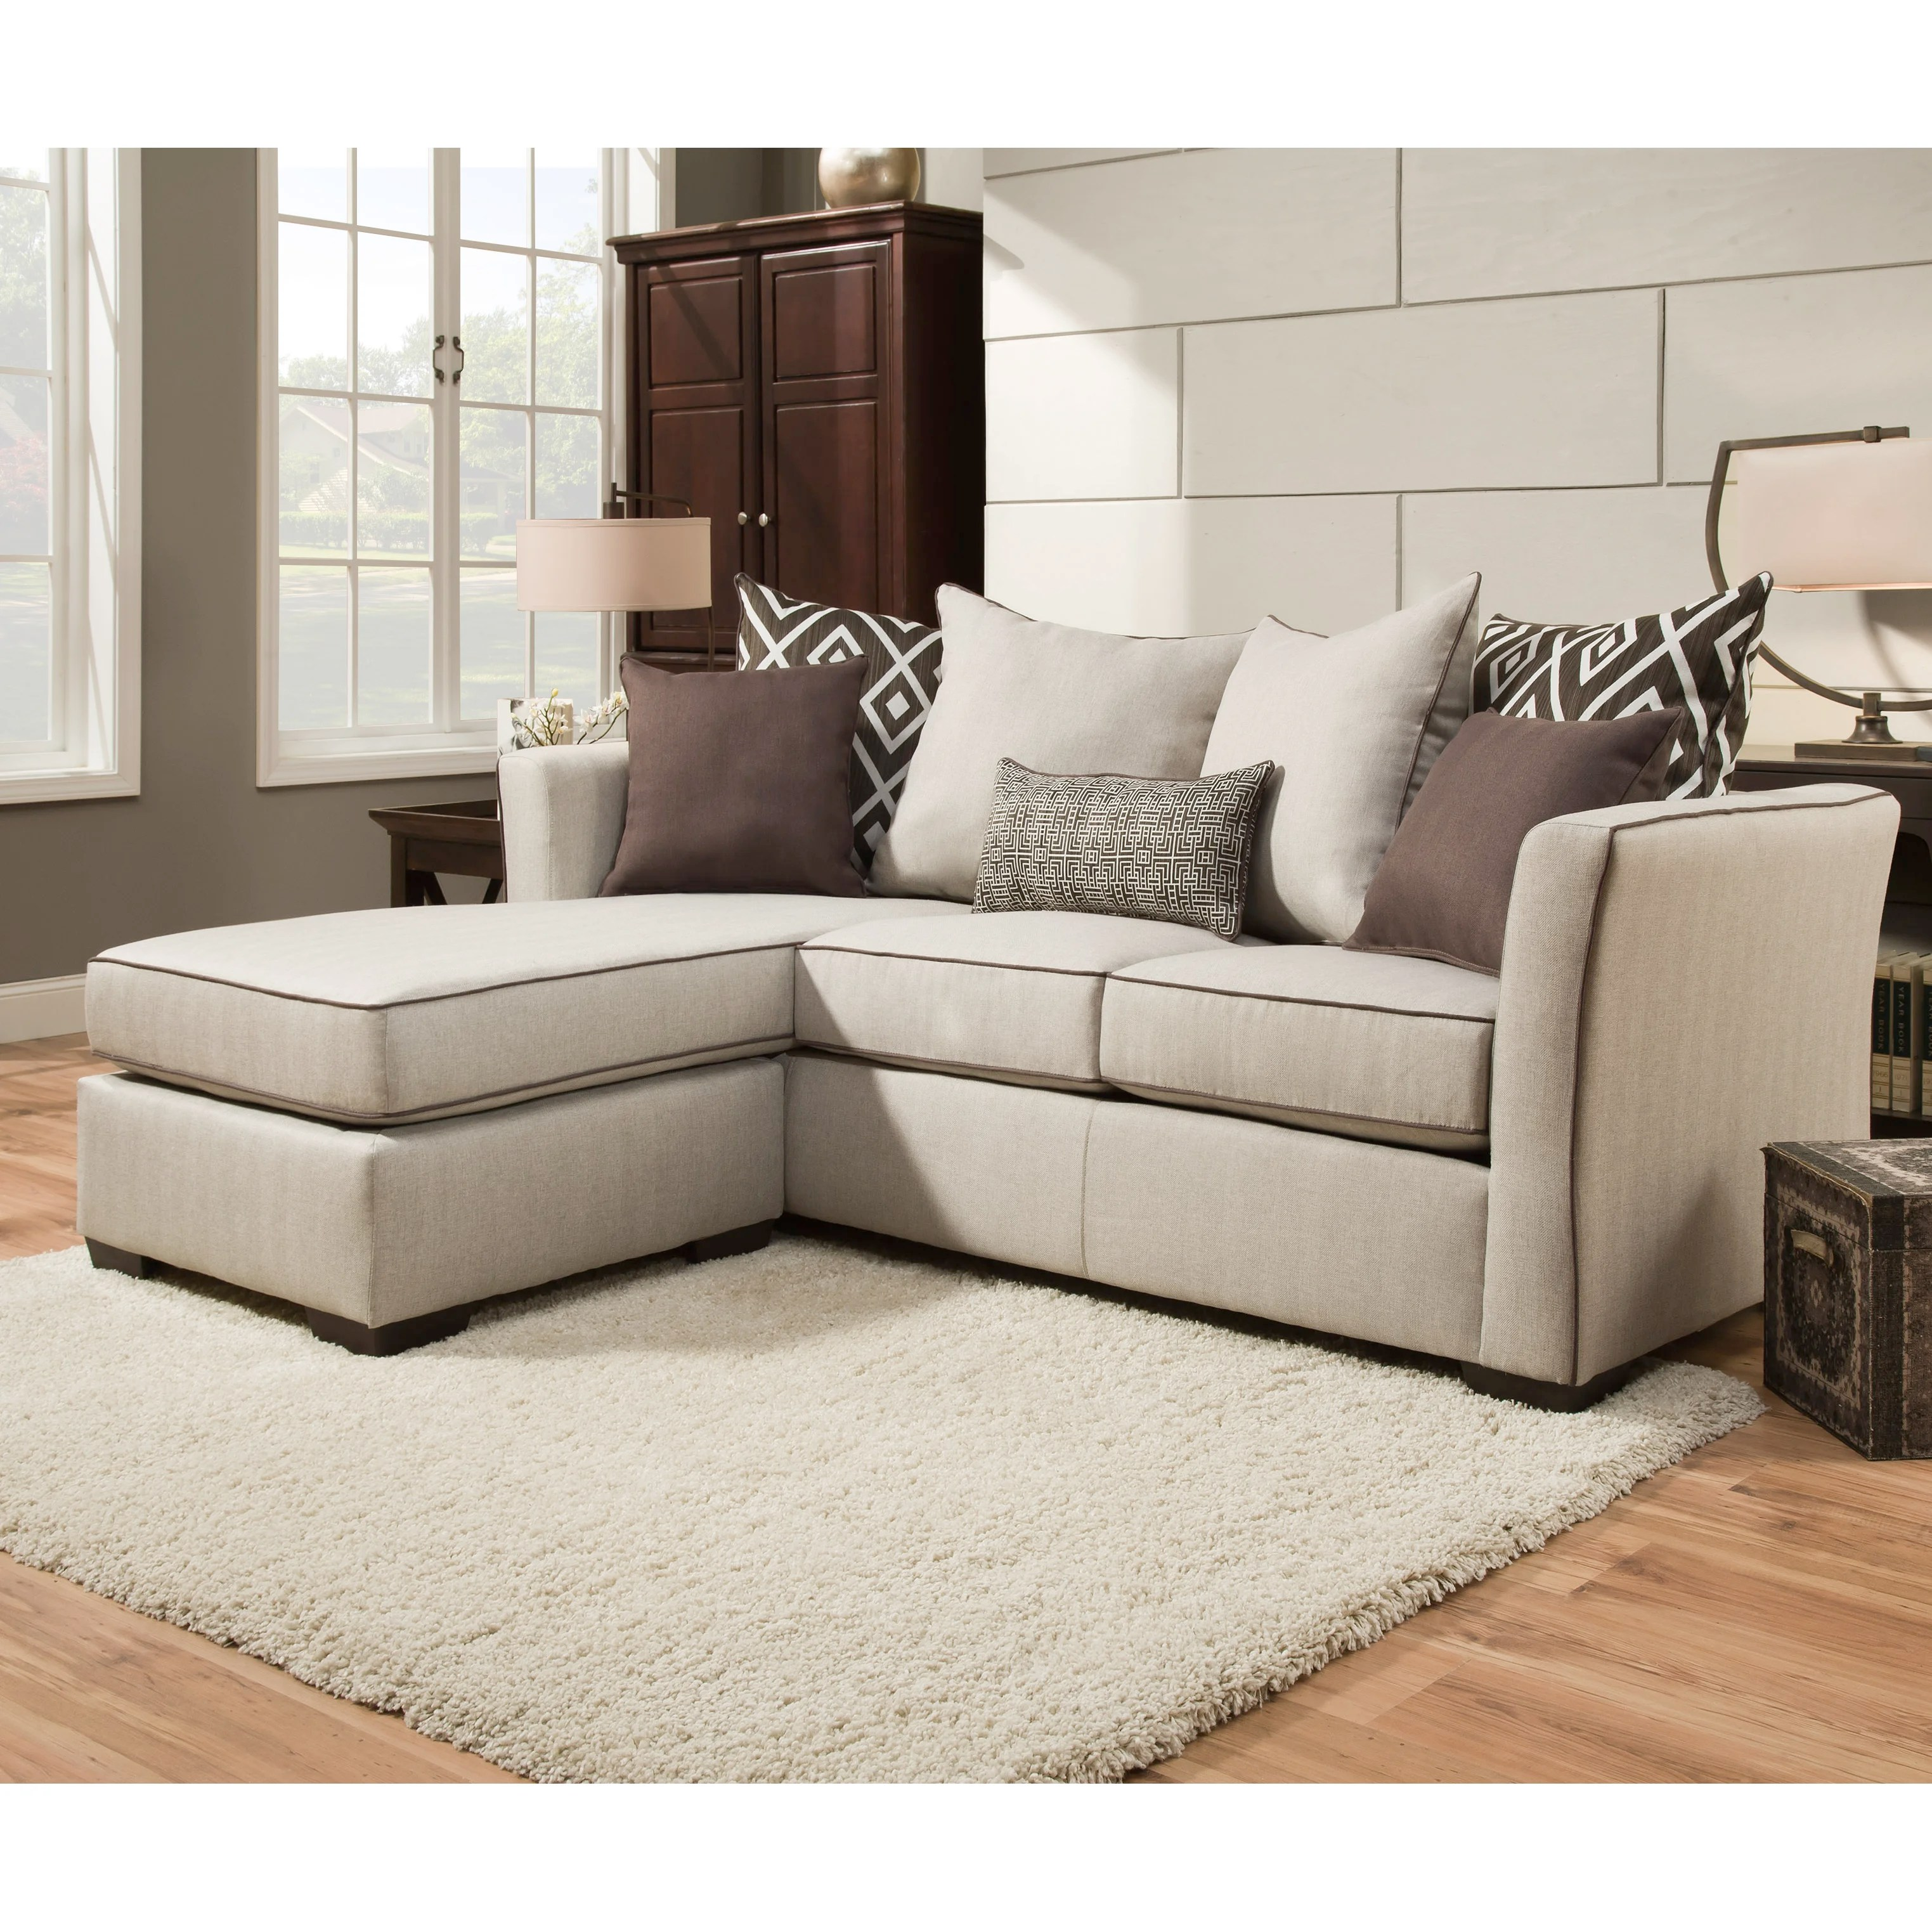 custom sectional sofas los angeles white in living rooms sofa design